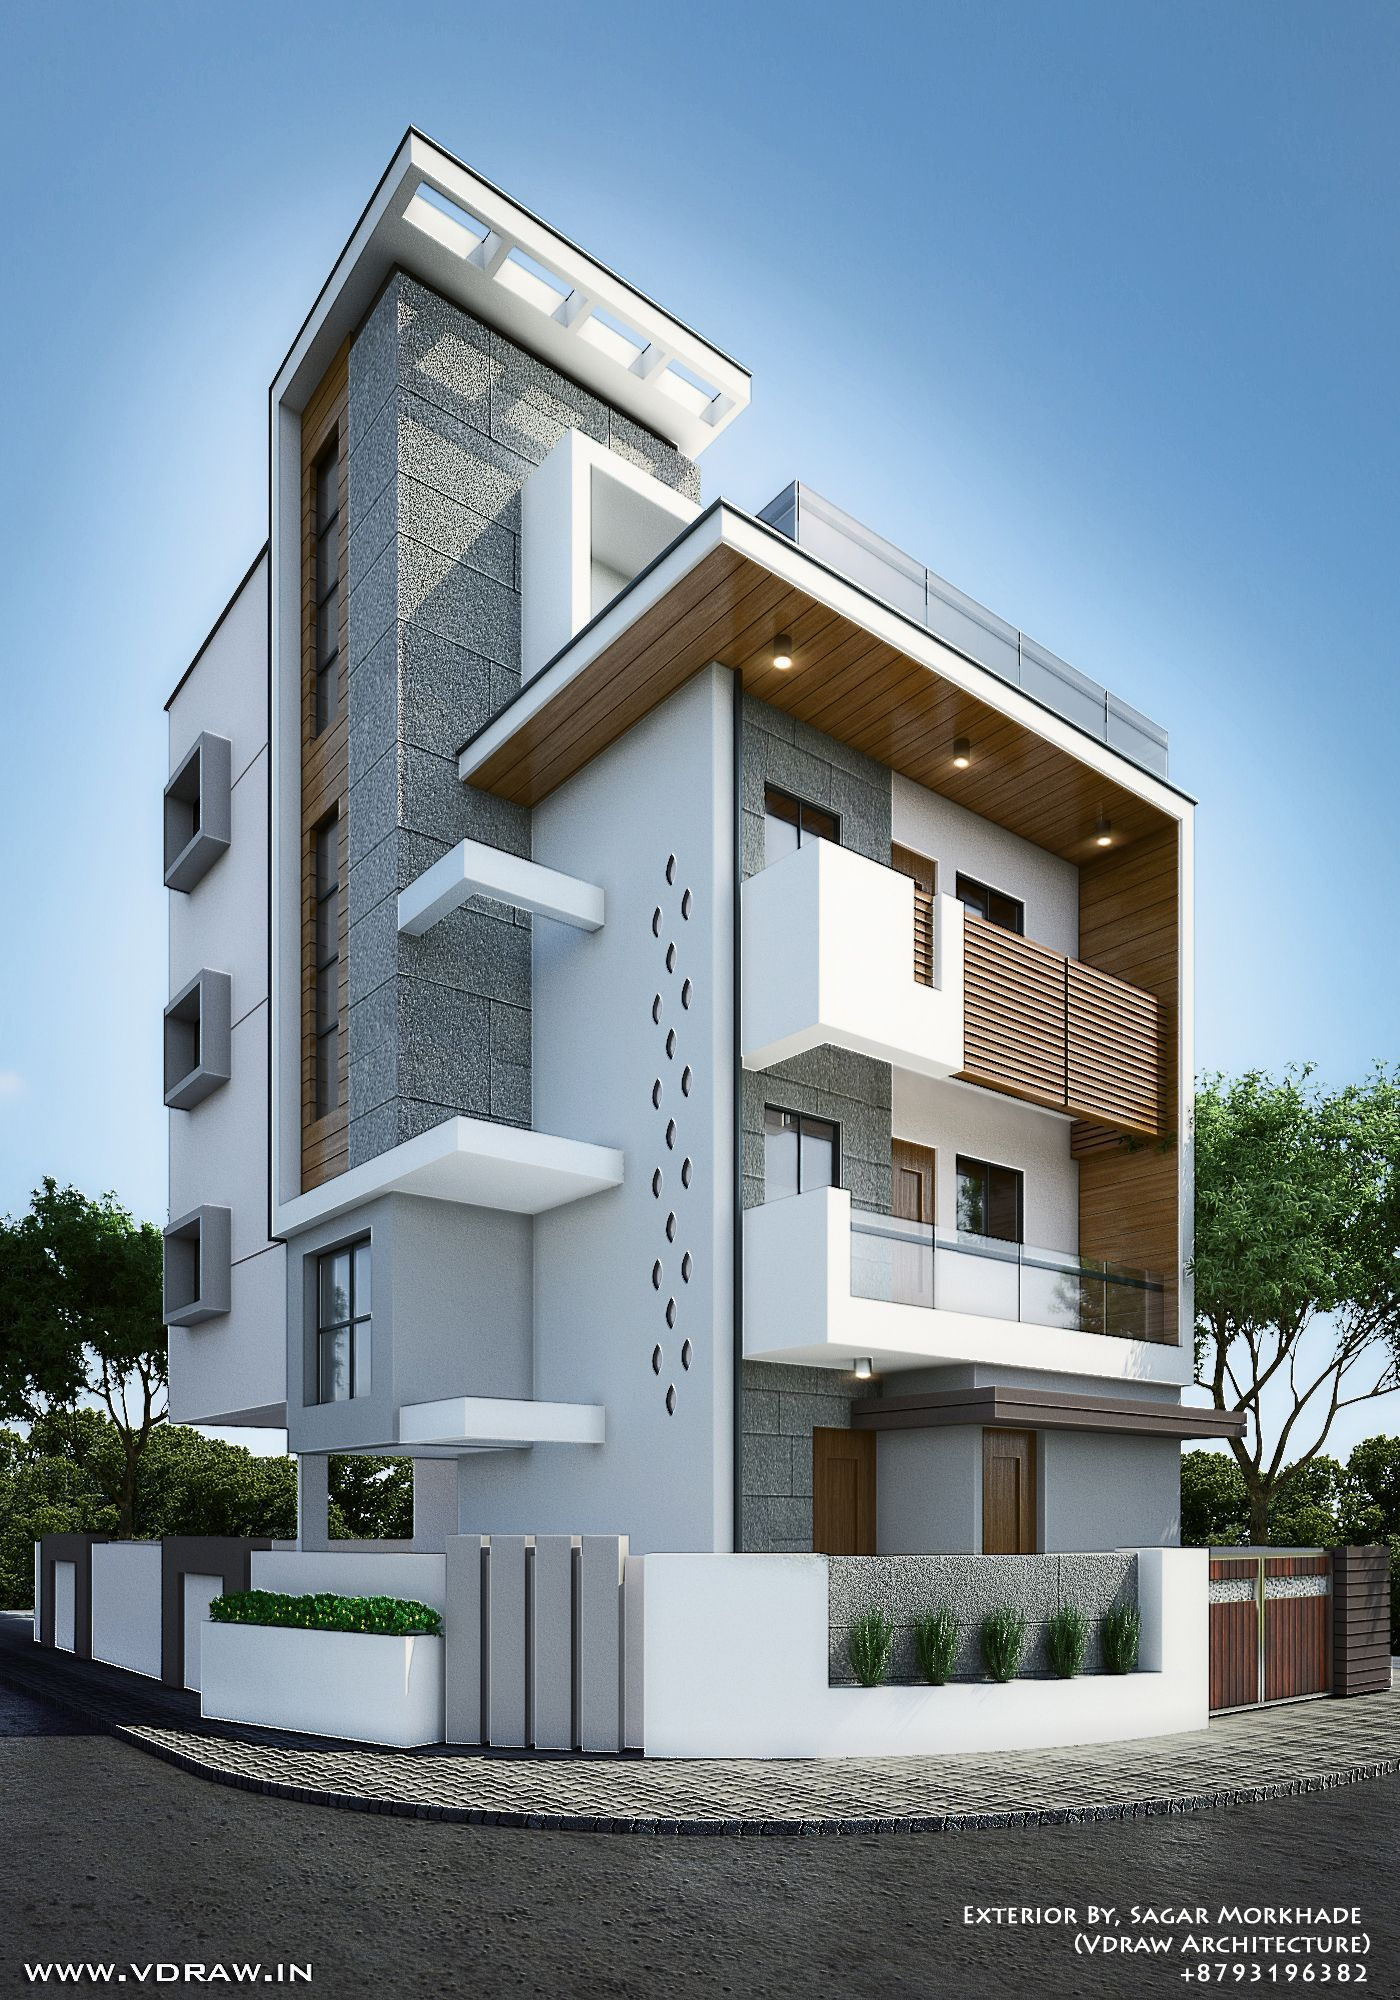 Exterior By, Sagar Morkhade (Vdraw Architecture) +8793196382 (With Images)